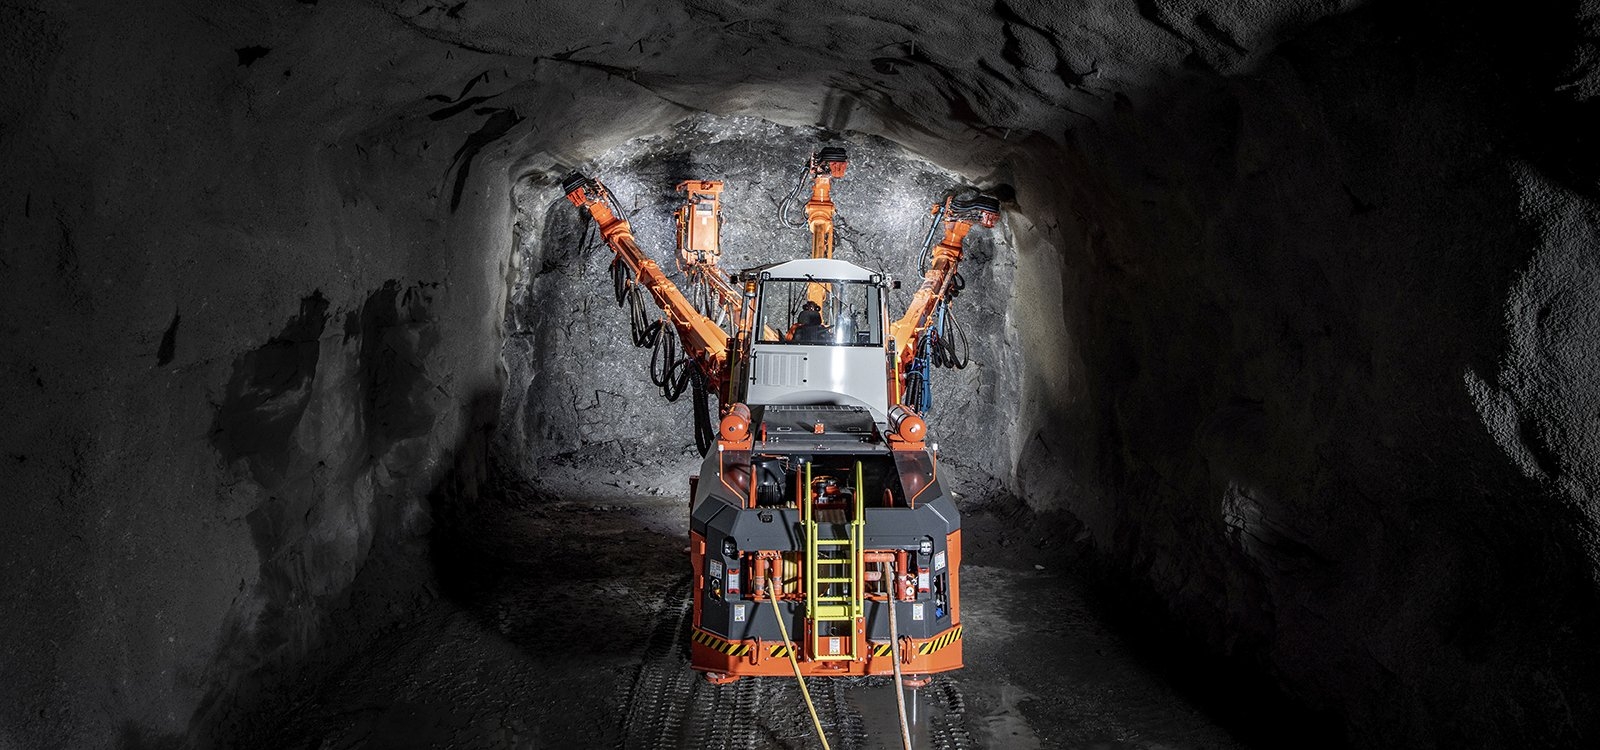 The new RD535 rock drill cuts energy consumption by up to 20 percent.